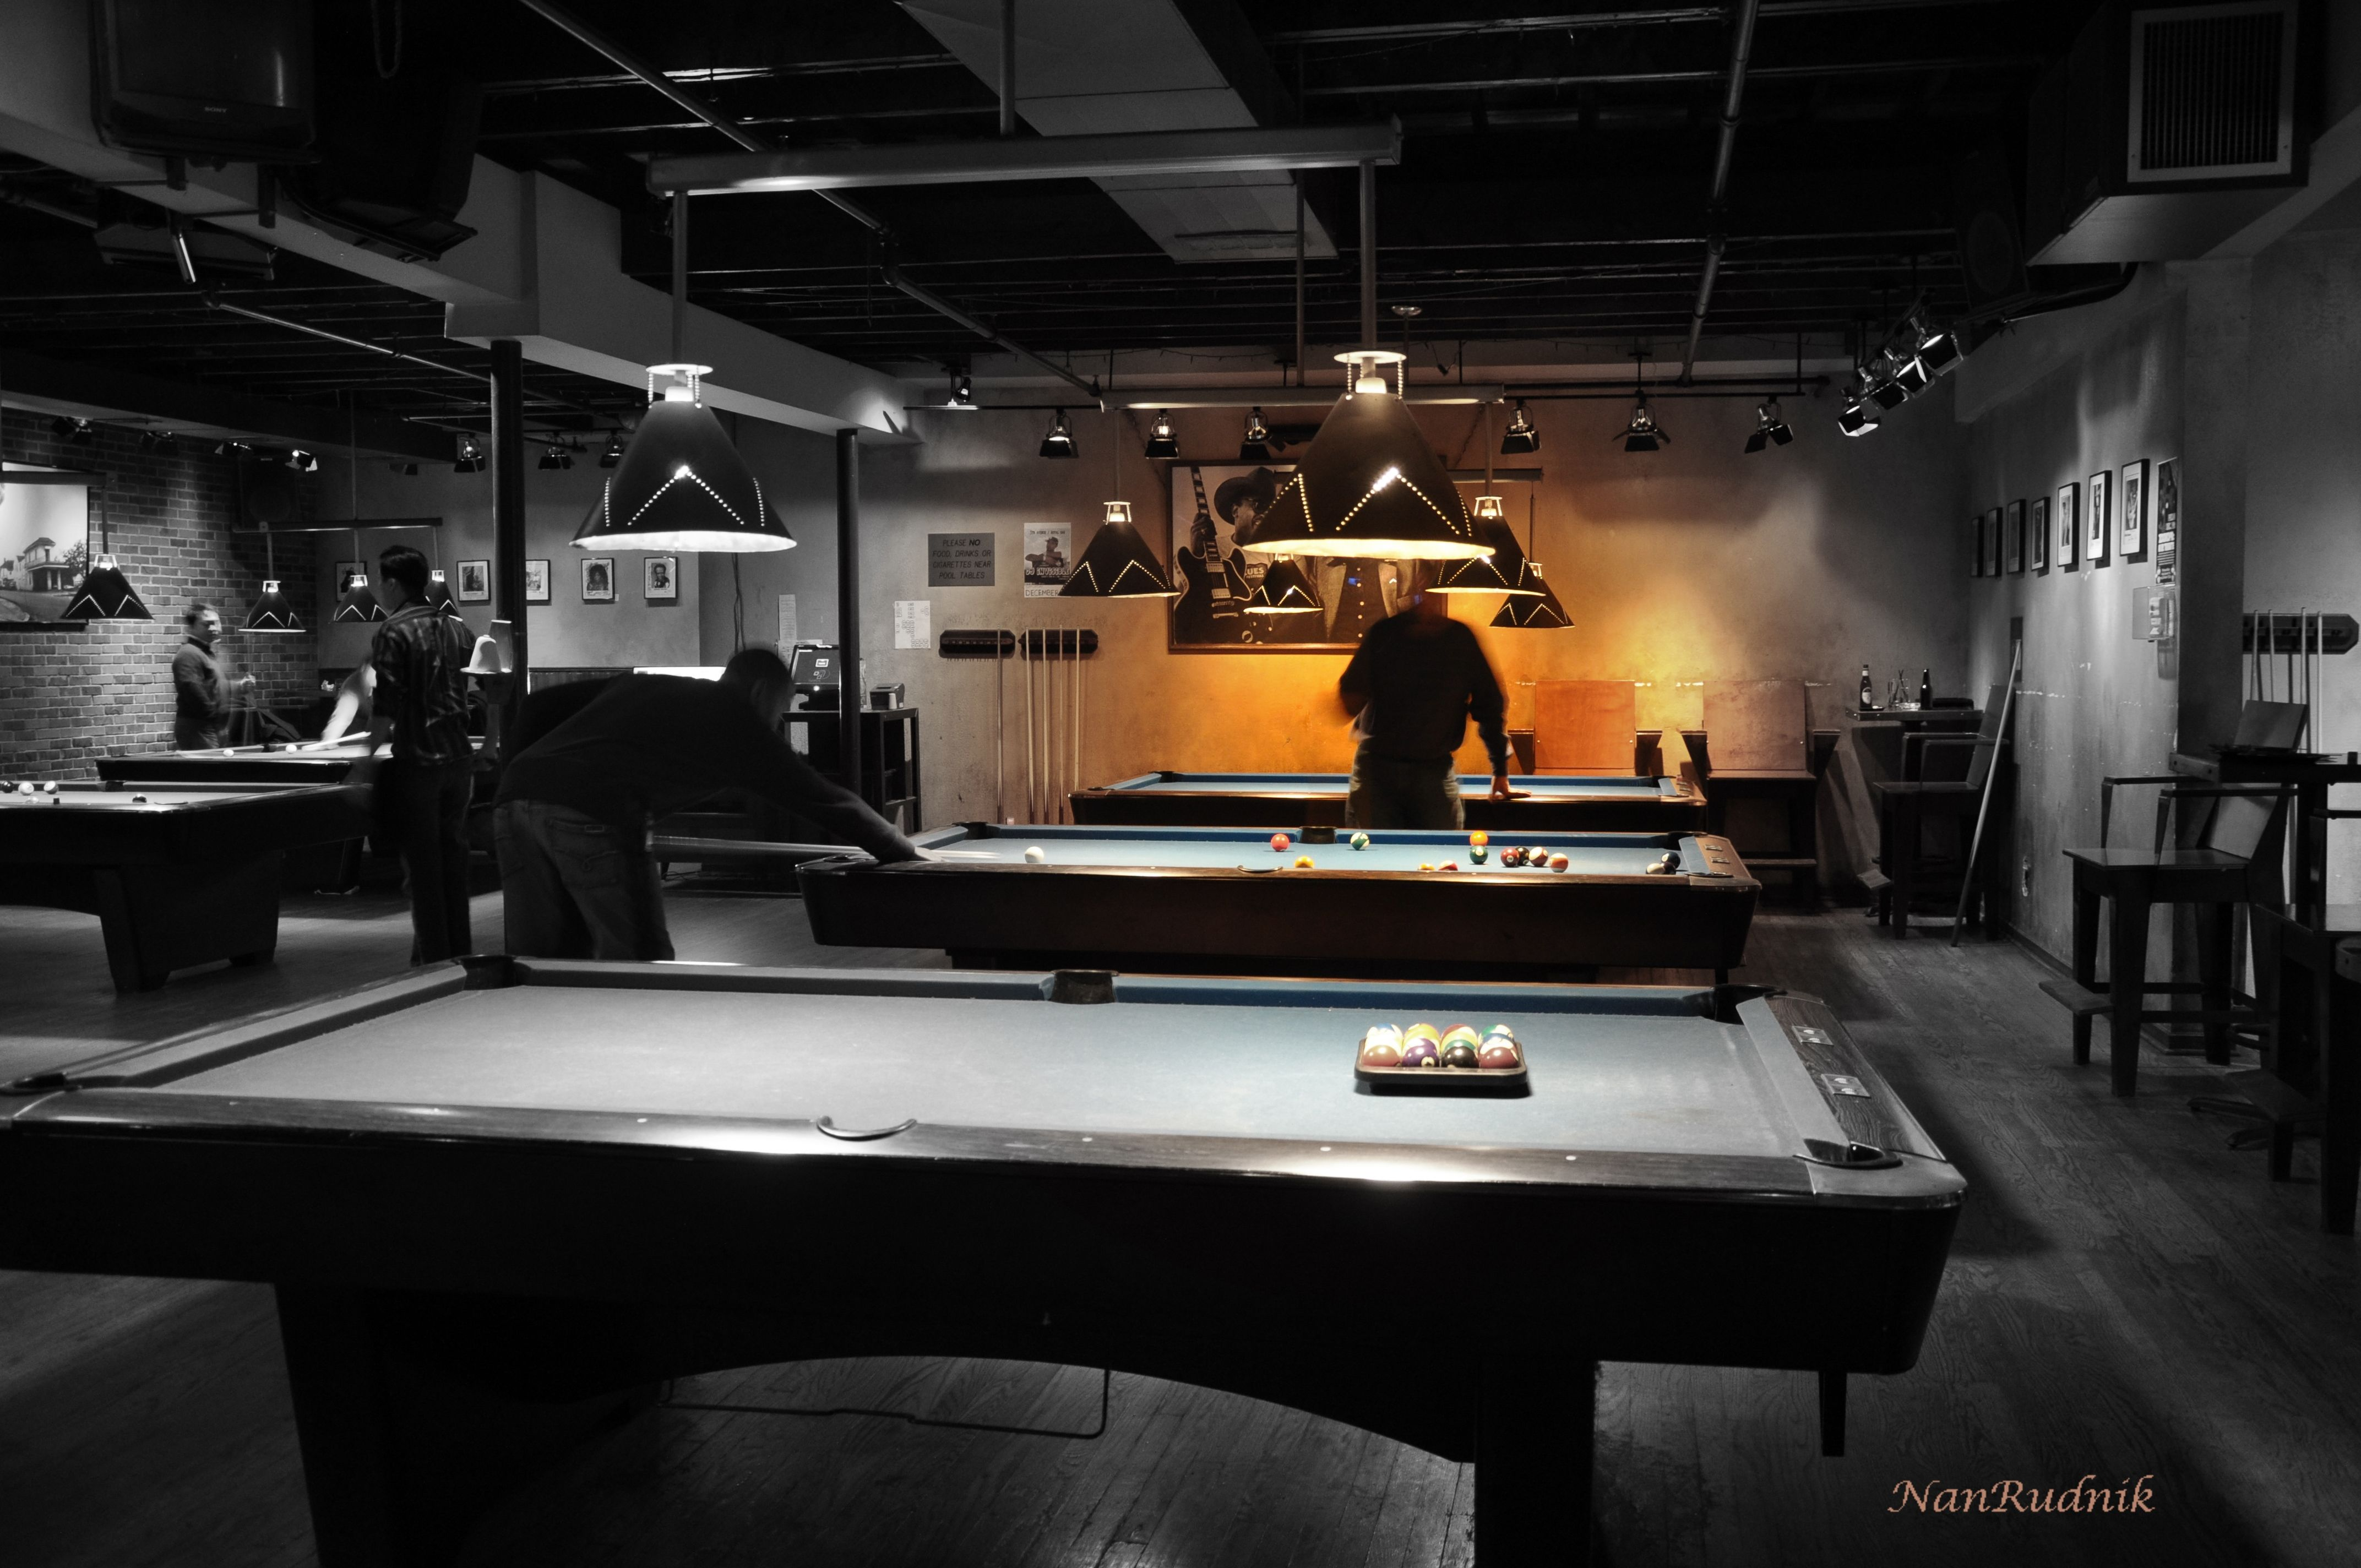 Pool Hall In Royal Oak My Own Photography Pinterest Hall Pool - Pool table hall near me